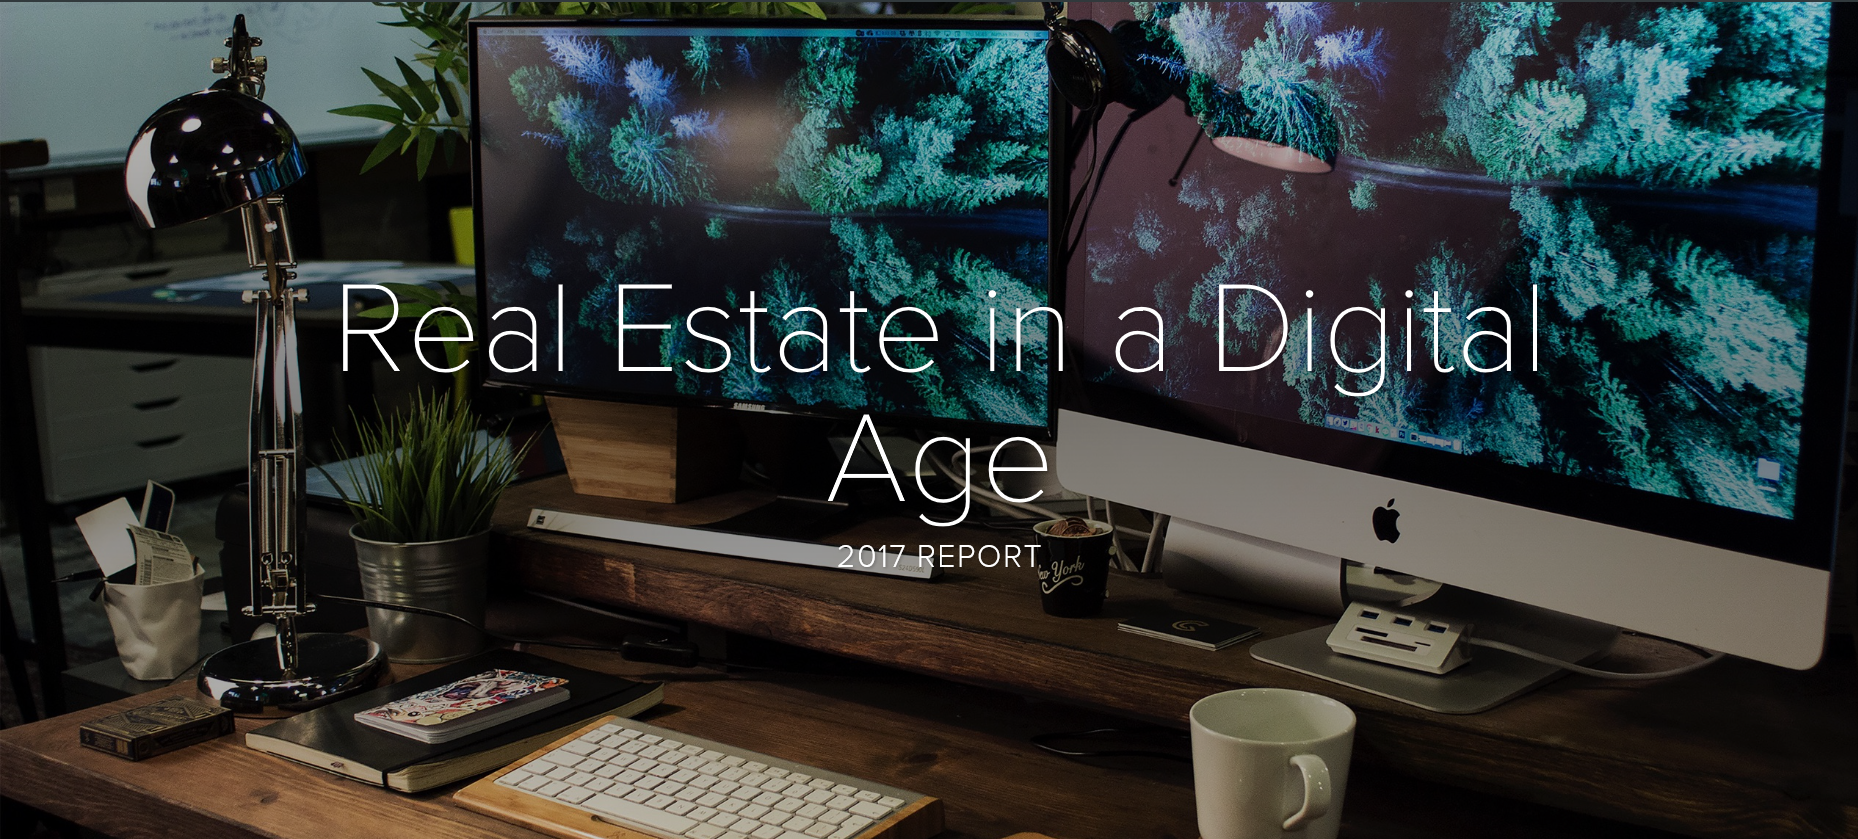 Real Estate In a Digital Age